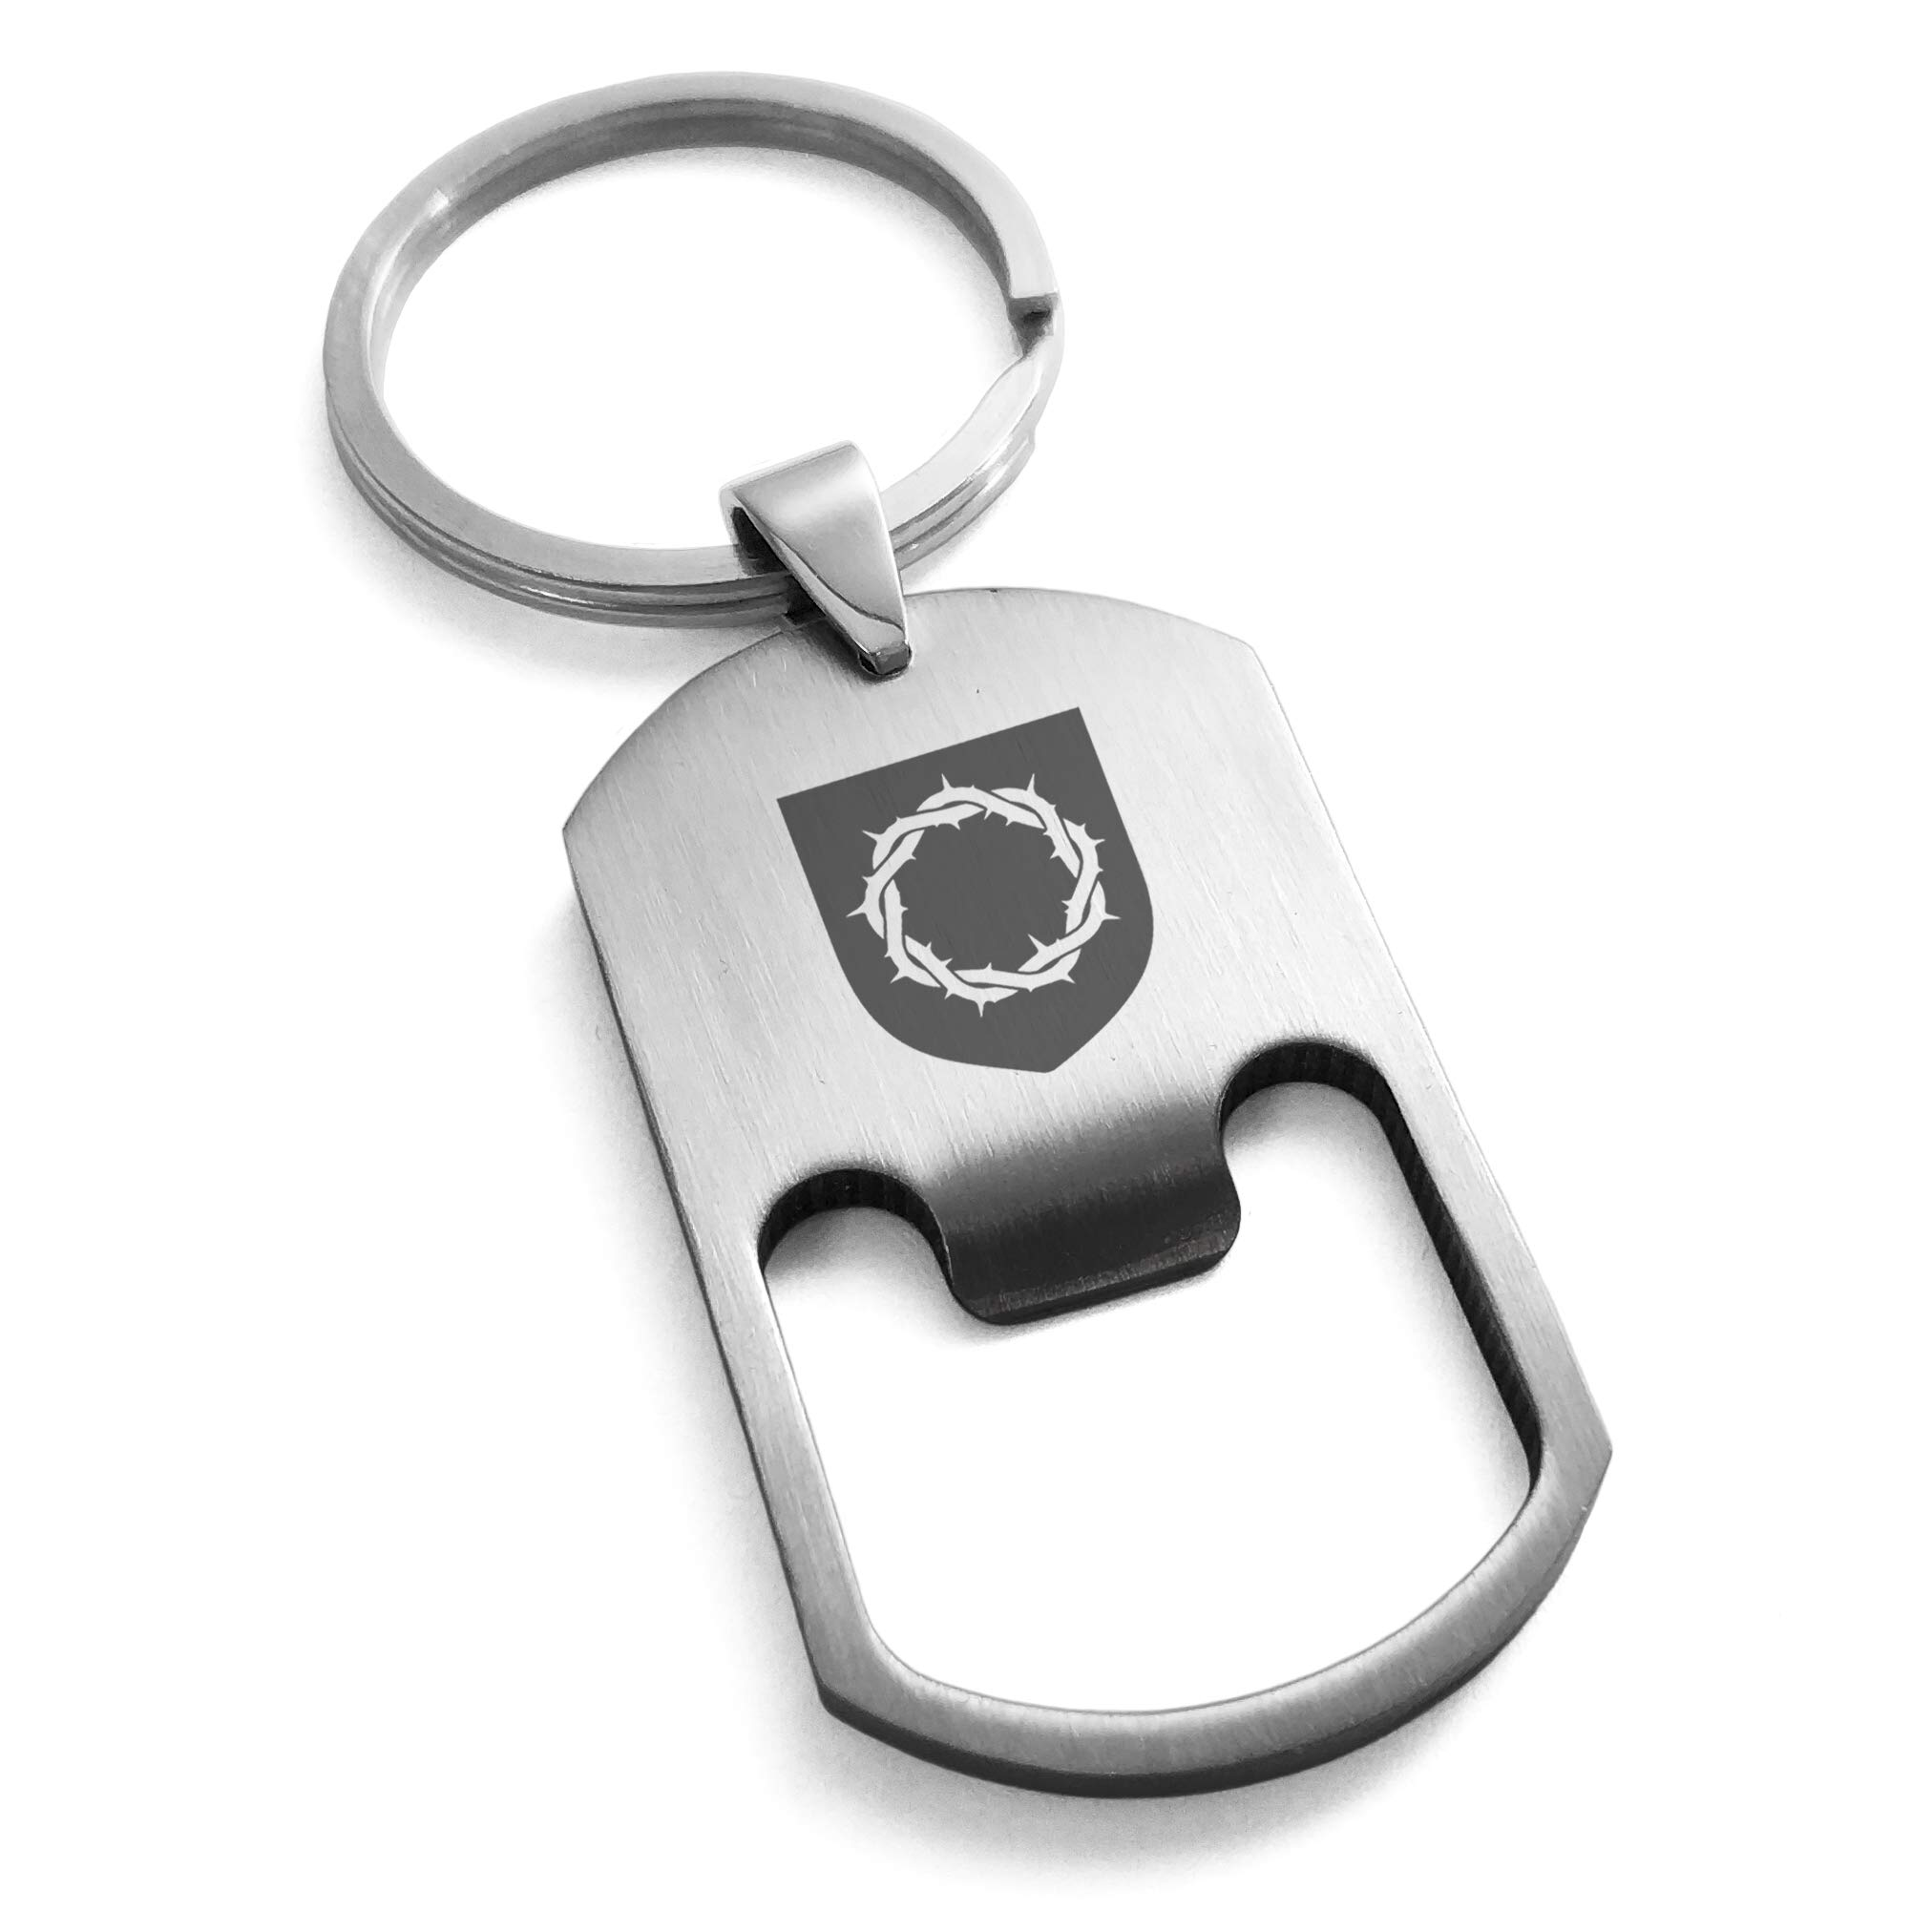 Tioneer Stainless Steel Crown Thorns Adversity Coat Arms Shield Engraved Bottle Opener Dog Tag Keychain Keyring